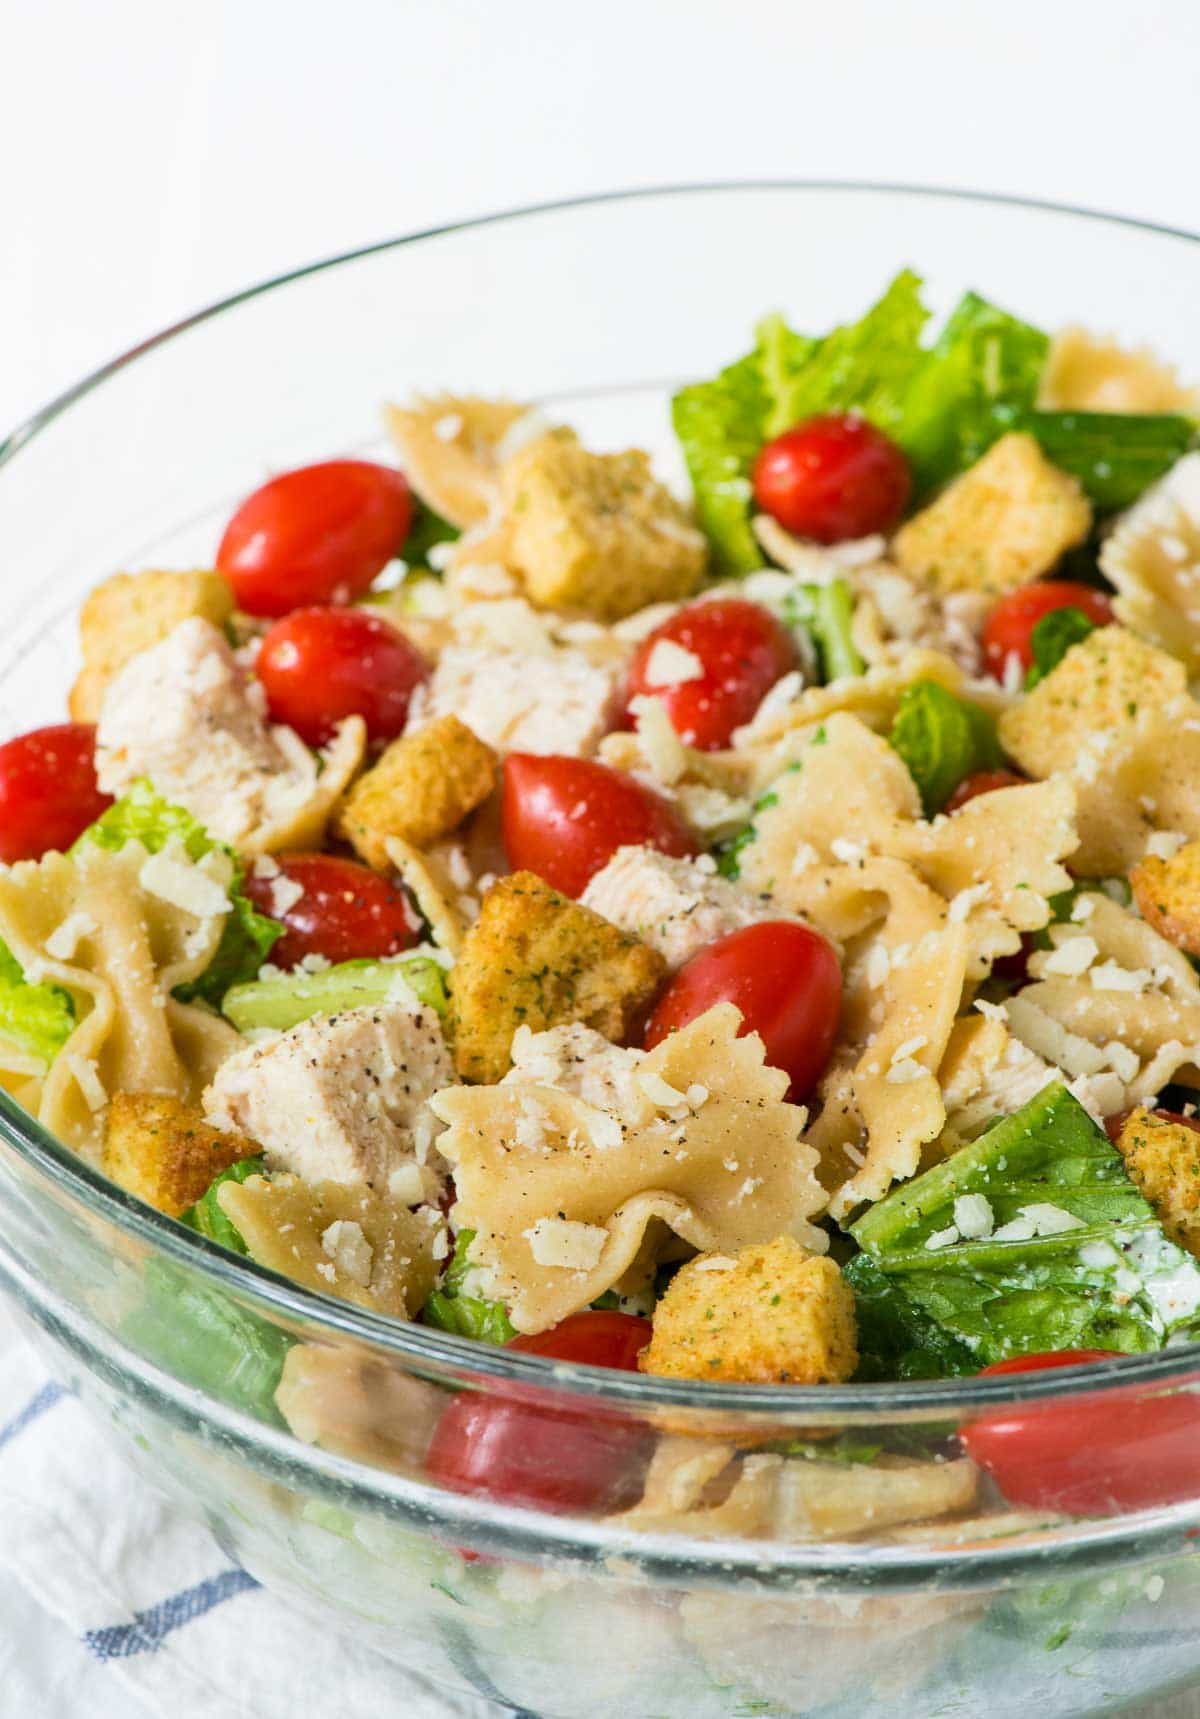 Bowtie Chicken Caesar Pasta Salad recipe made with fresh, healthy ingredients. Creamy, EASY and a hit everywhere I bring it! @wellplated